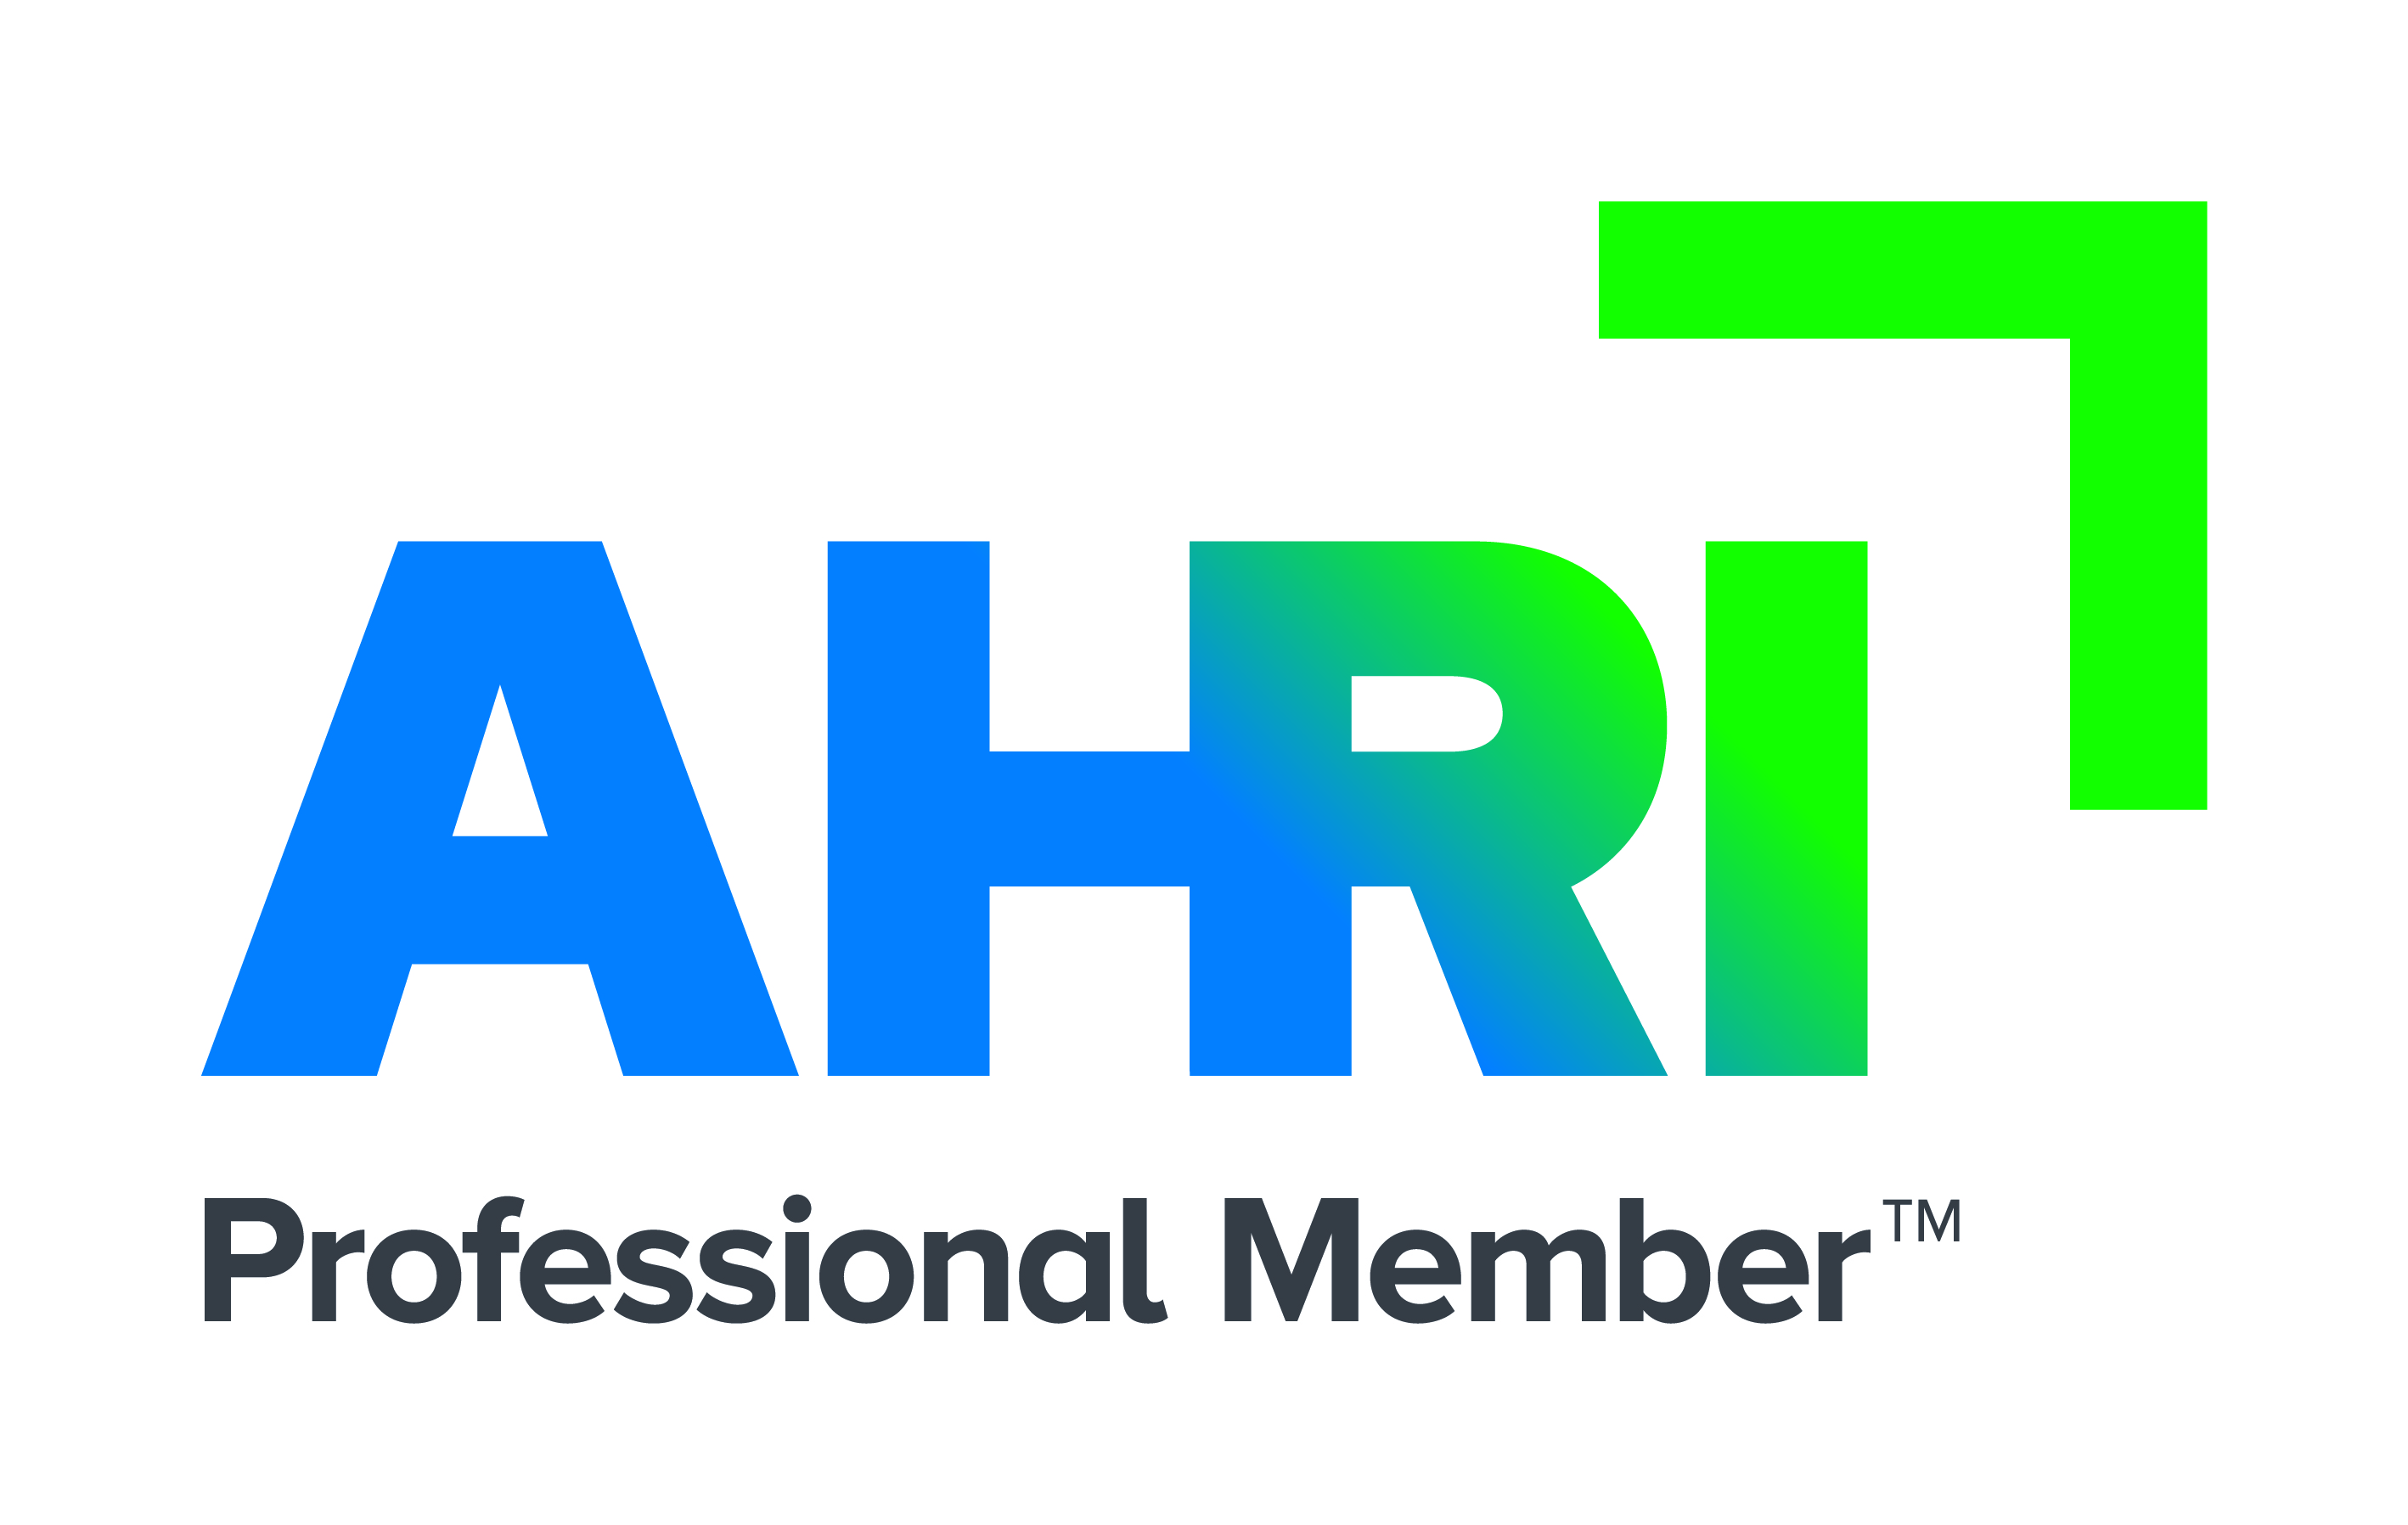 Certified Professional Member of Australian Human Resources Institute